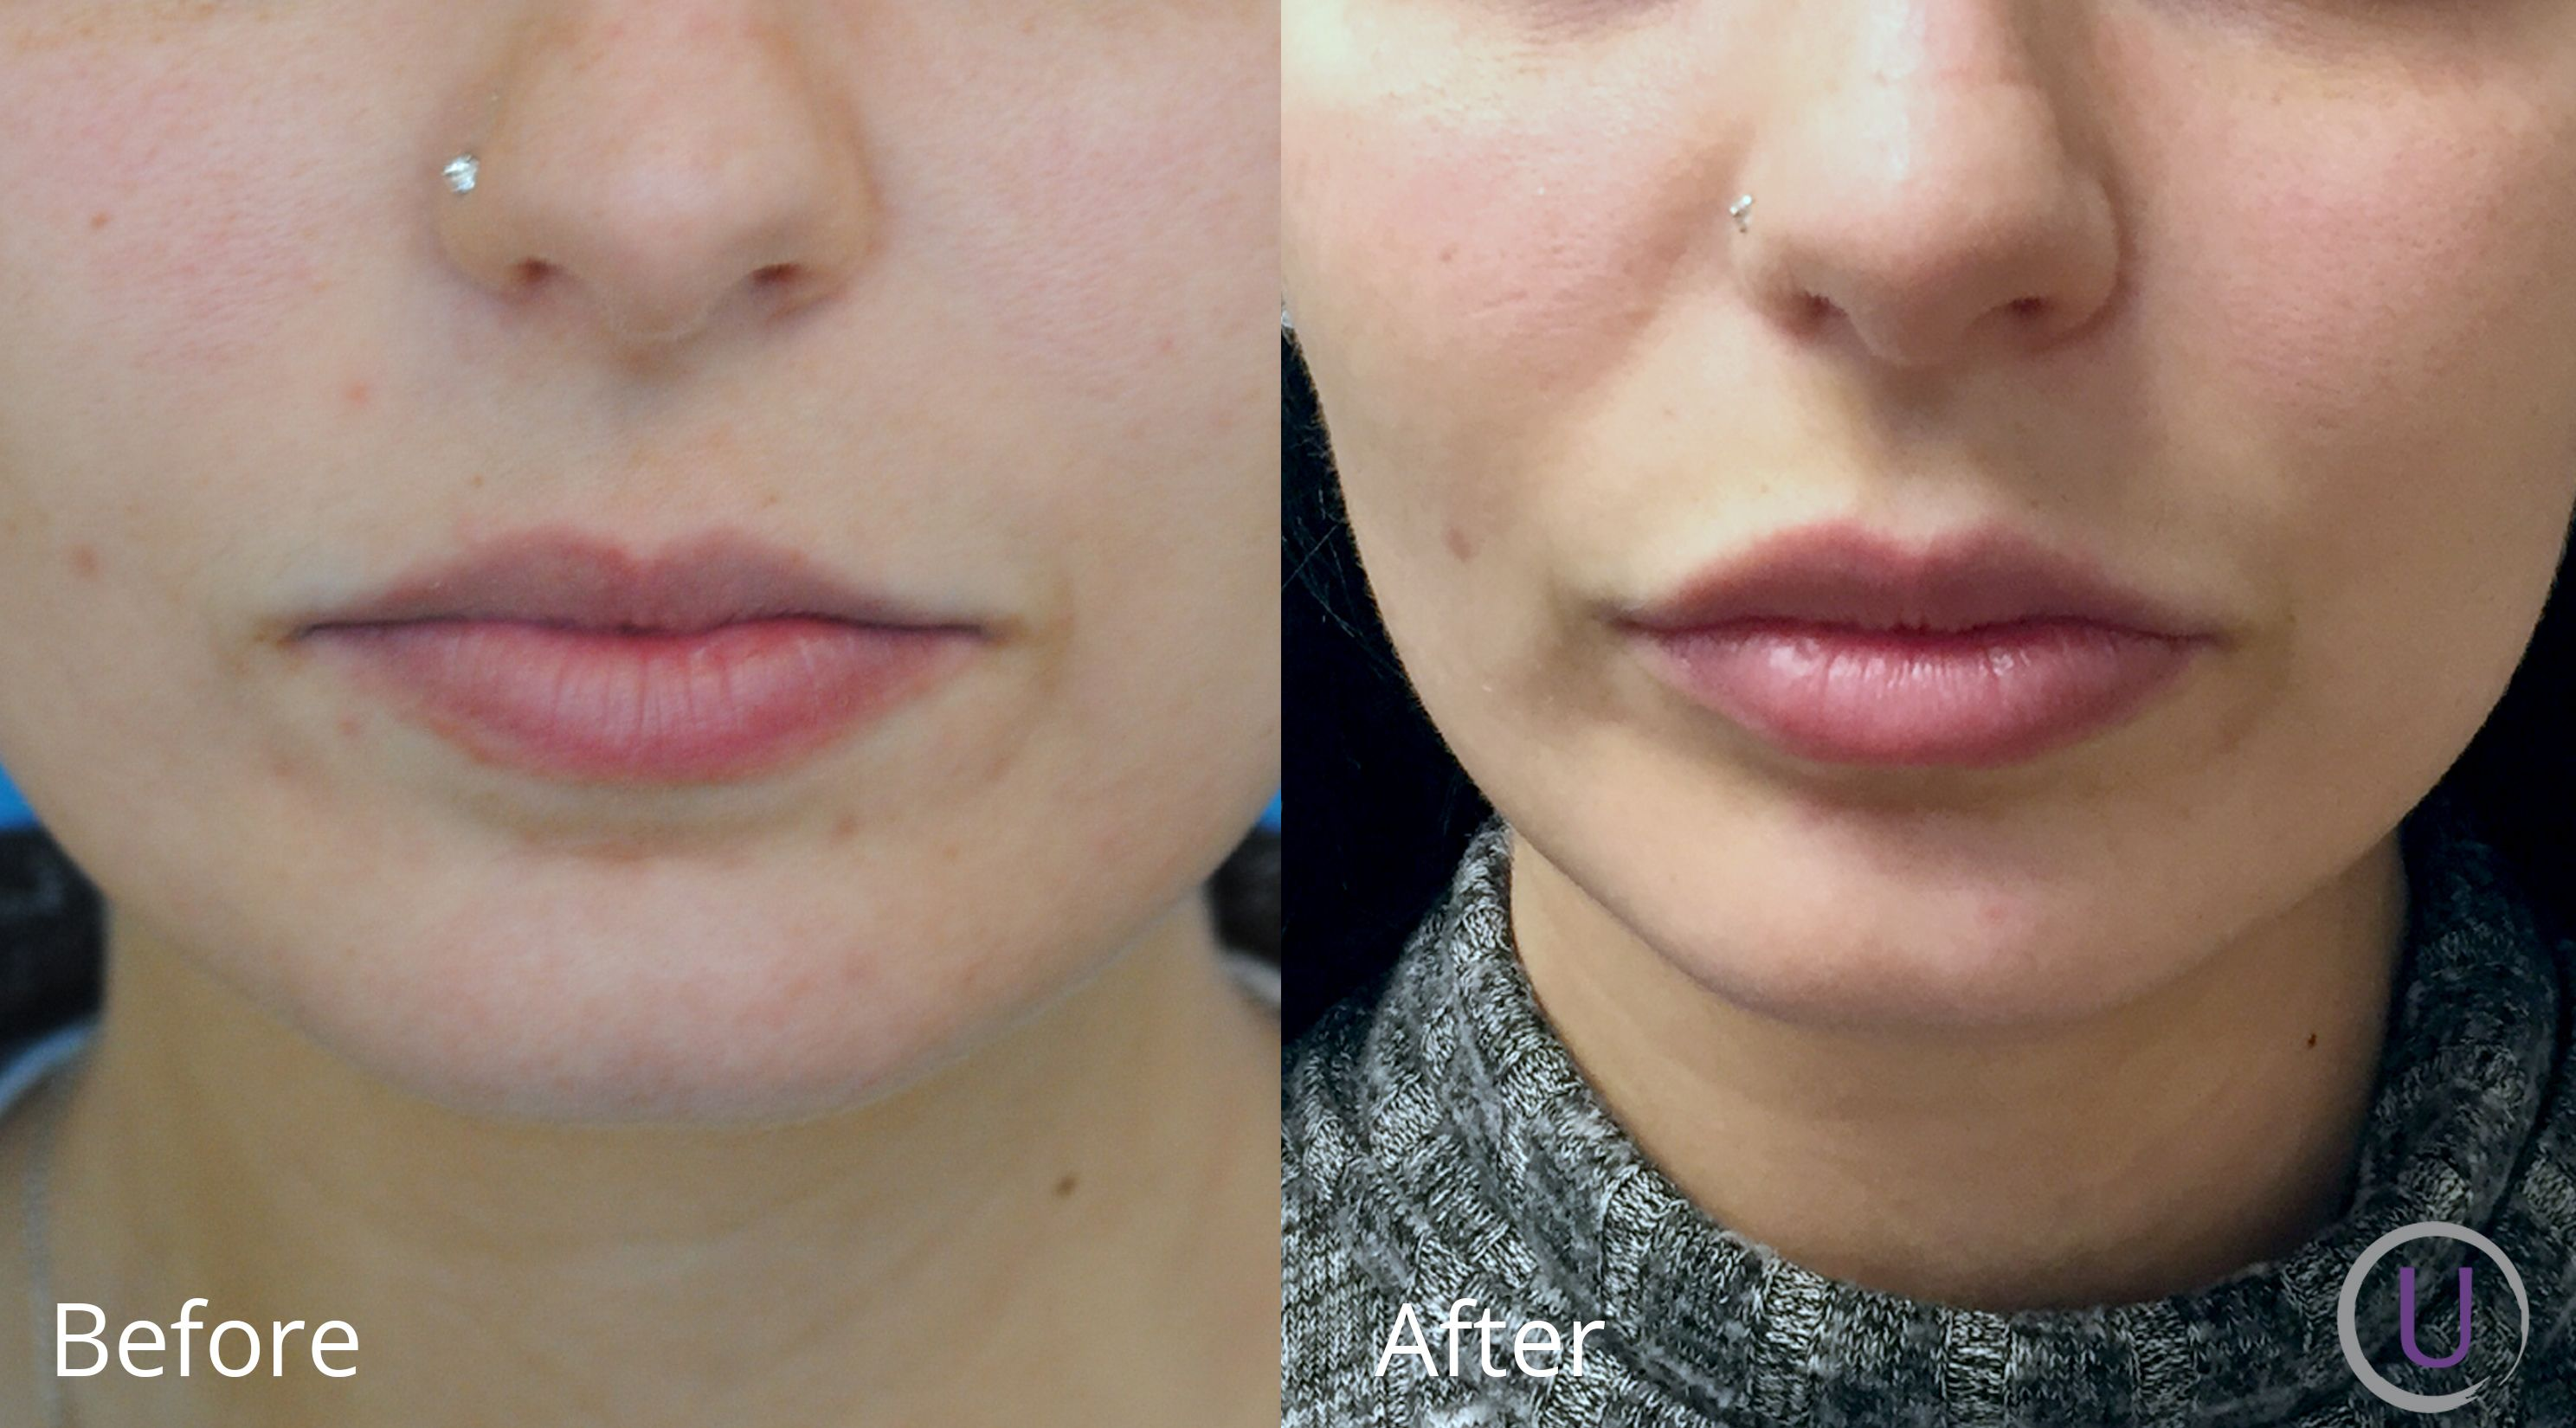 Lip contouring: augmentation without injections